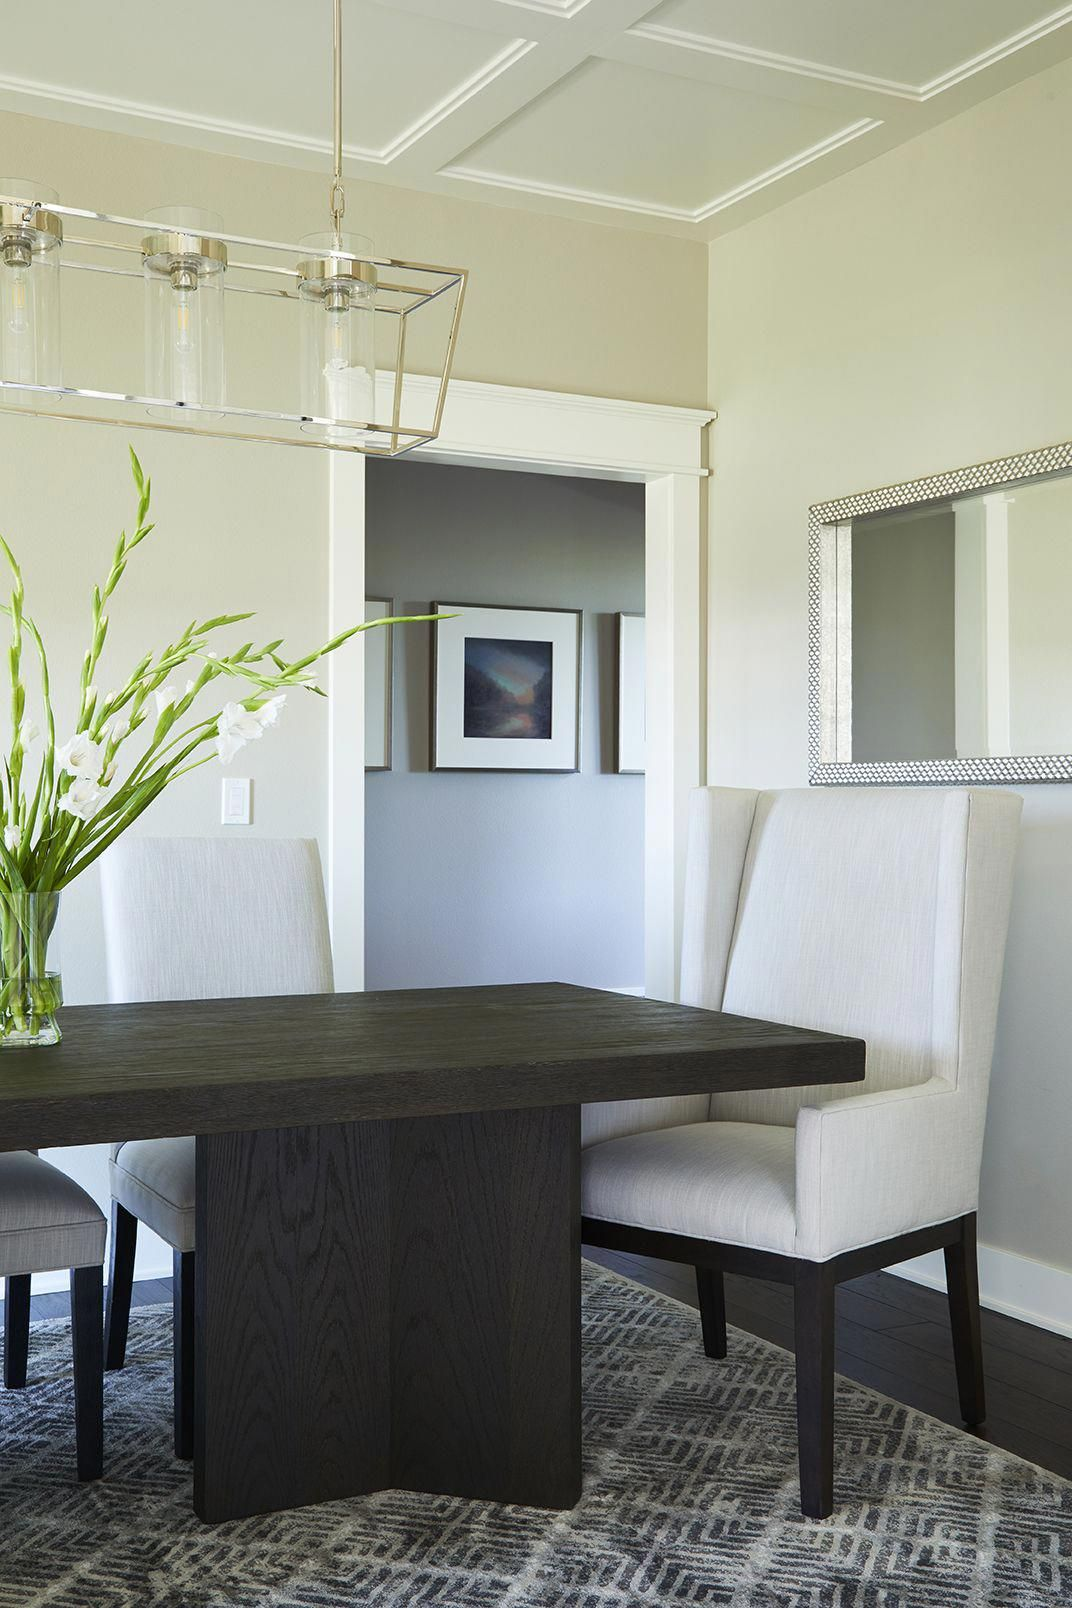 Transitional Dining Room Design By Jillian Lare Interior Des Moines Iowa Painted Benjamin Moore Revere Pewter Diningroomdecor Interiordesign